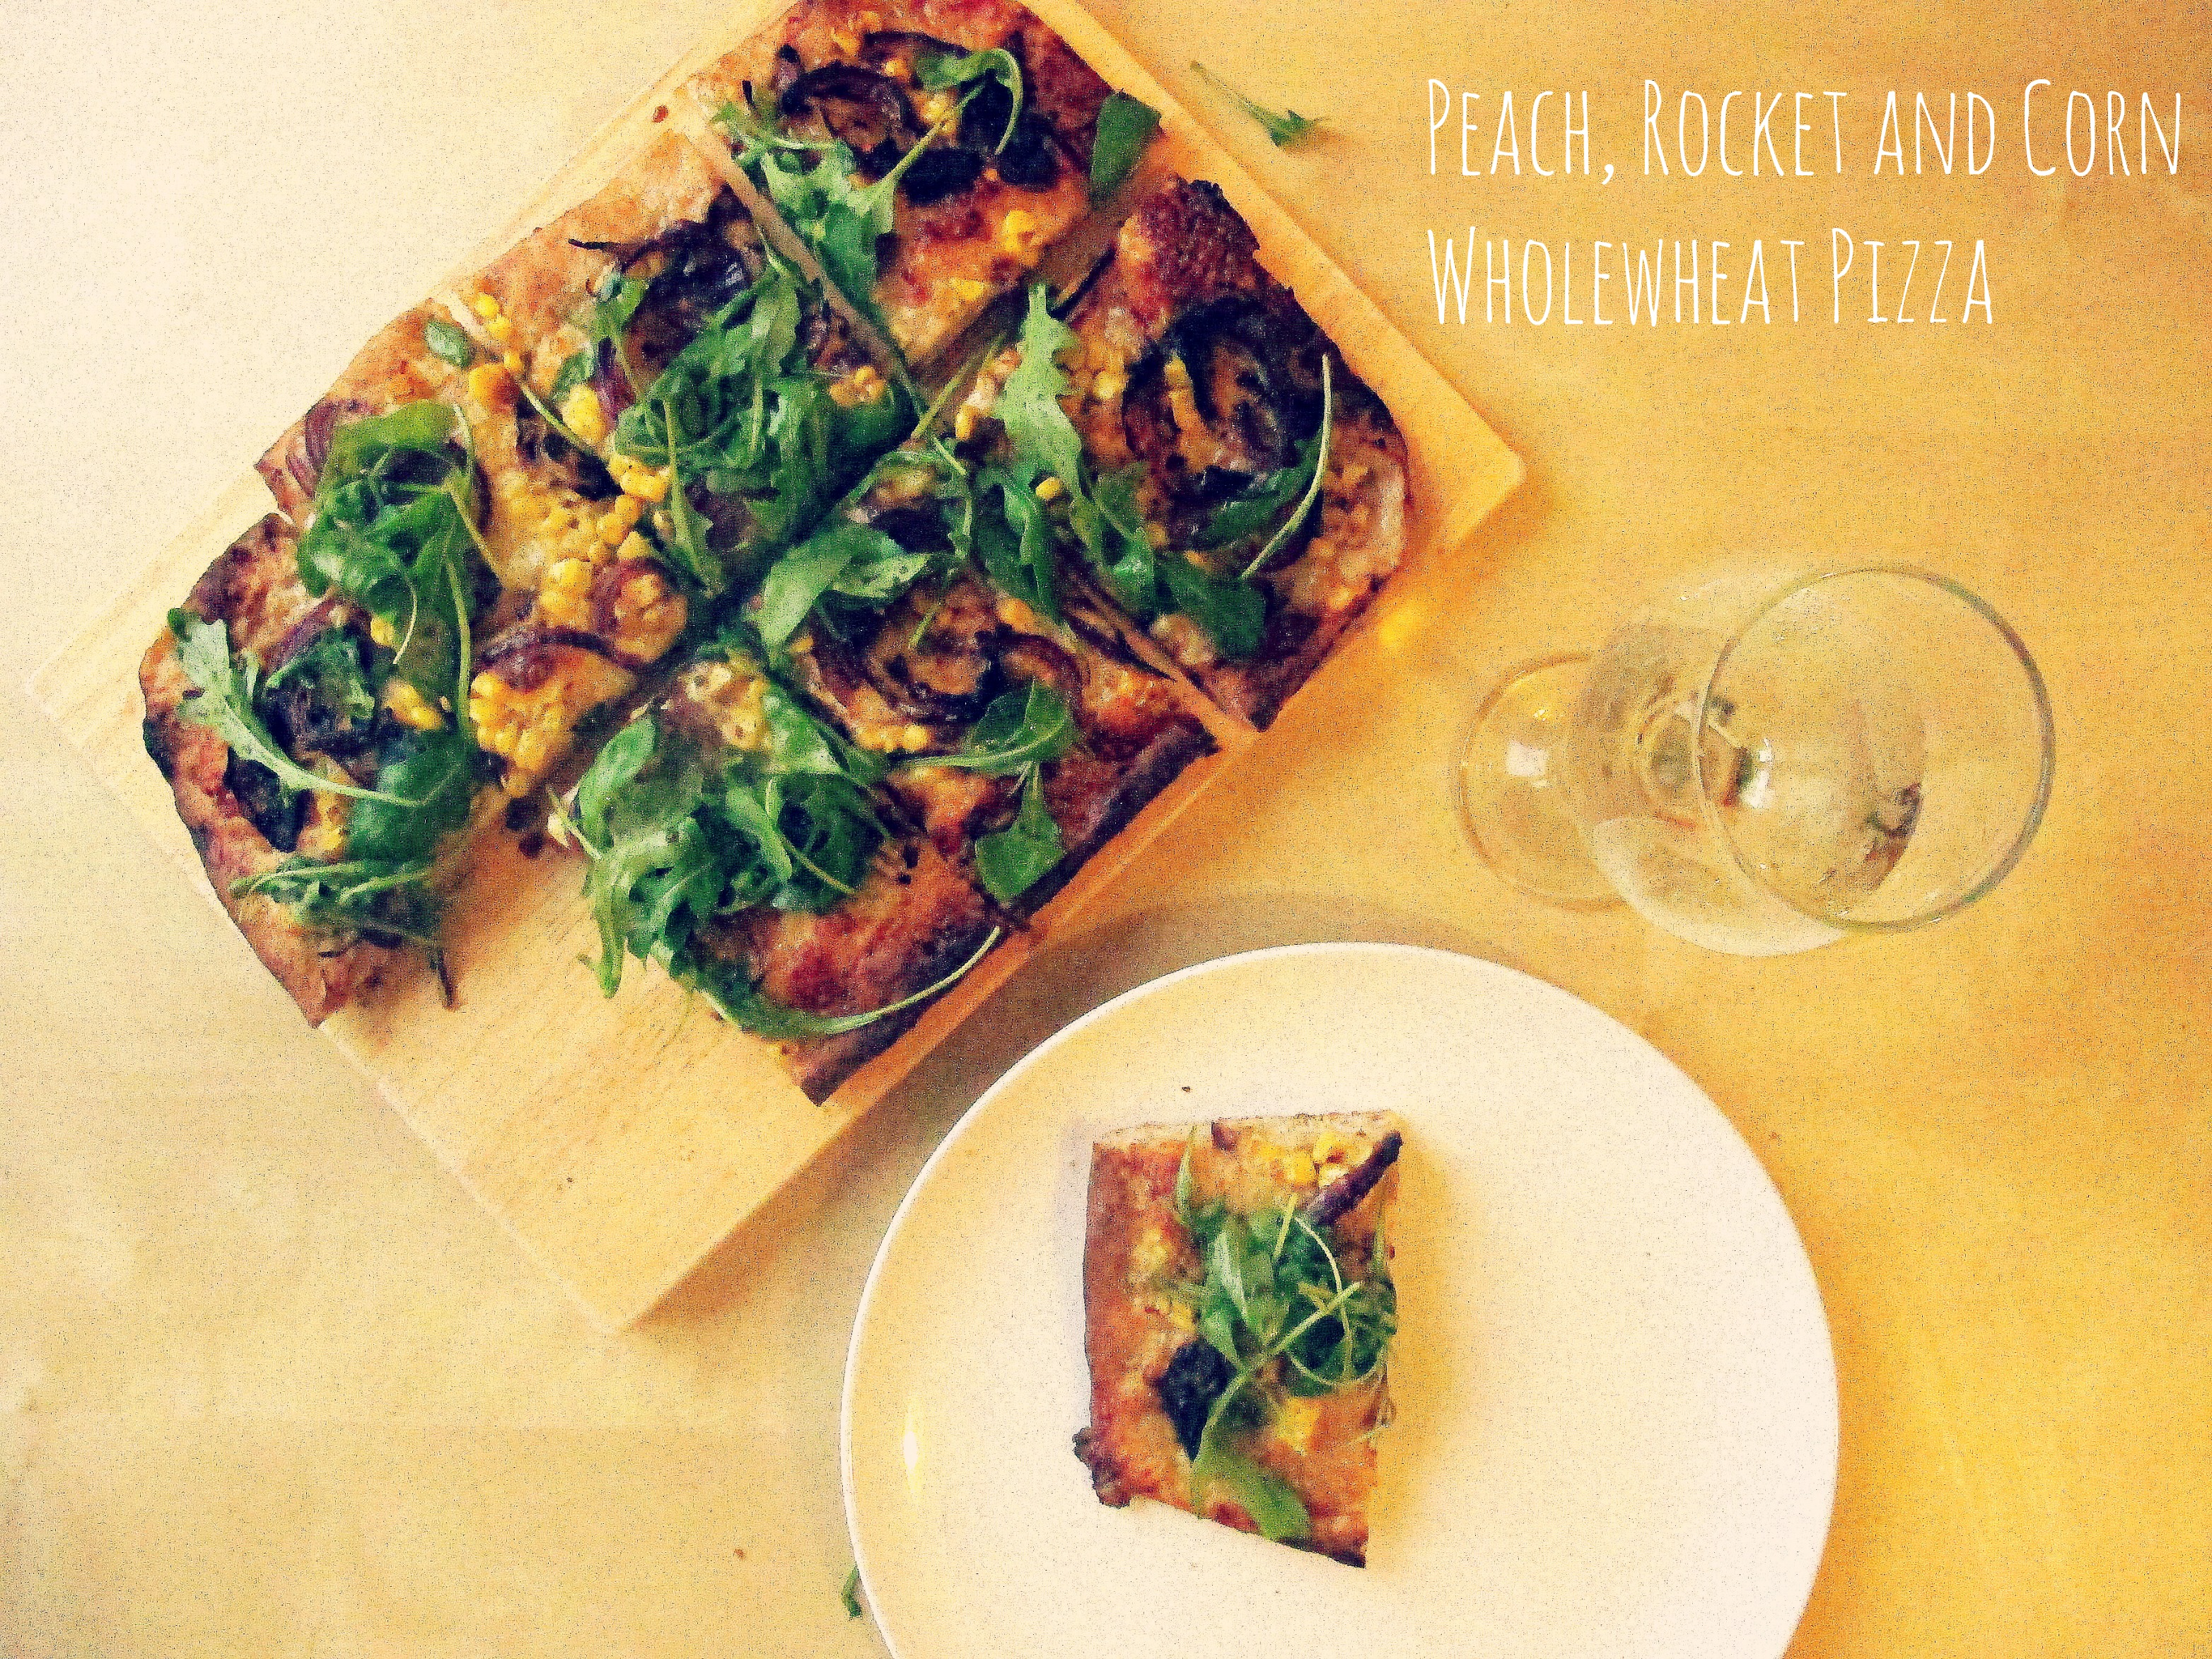 Peach Rocket and Corn Wholewheat Pizza